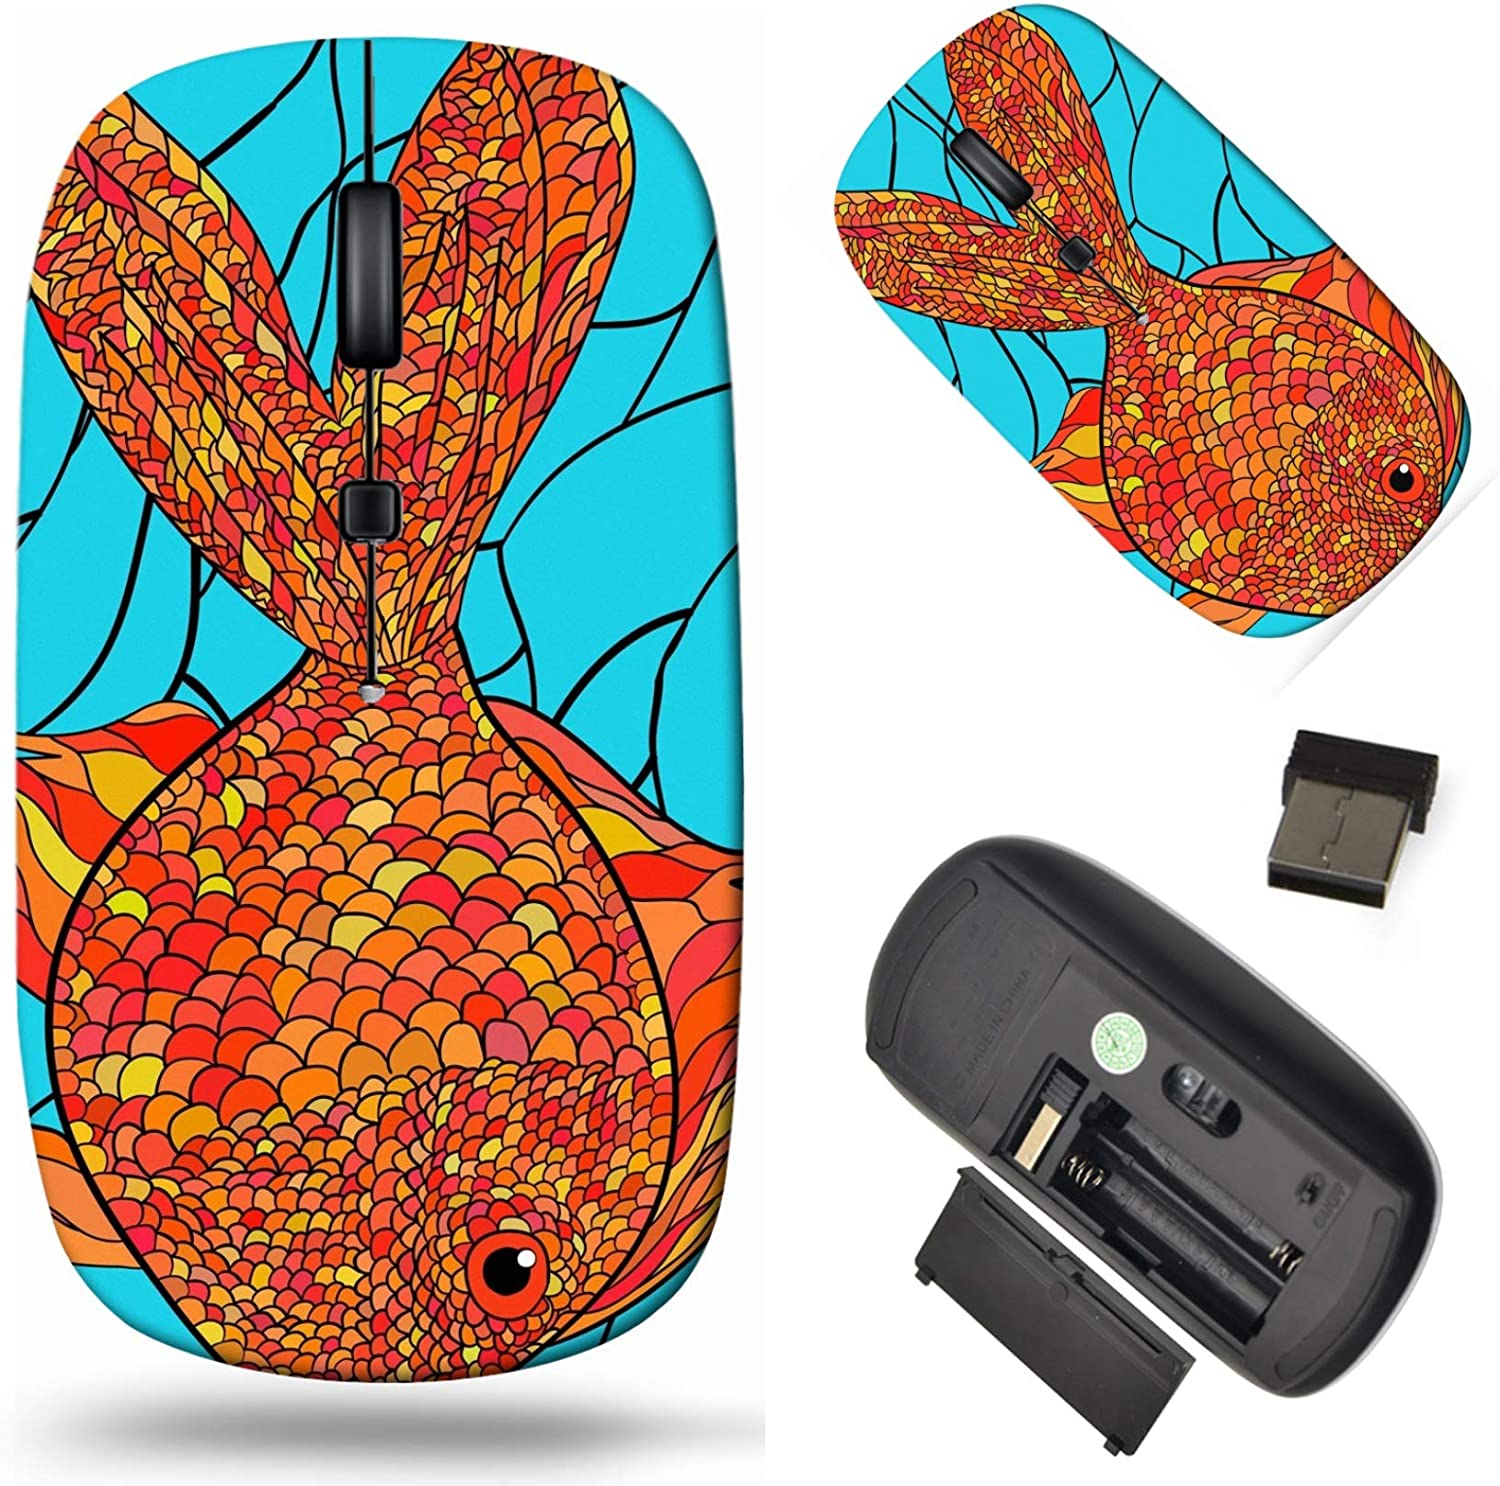 Wireless Computer Mouse 2.4G with Receiver Cor free New products, world's highest quality popular! shipping USB Laptop